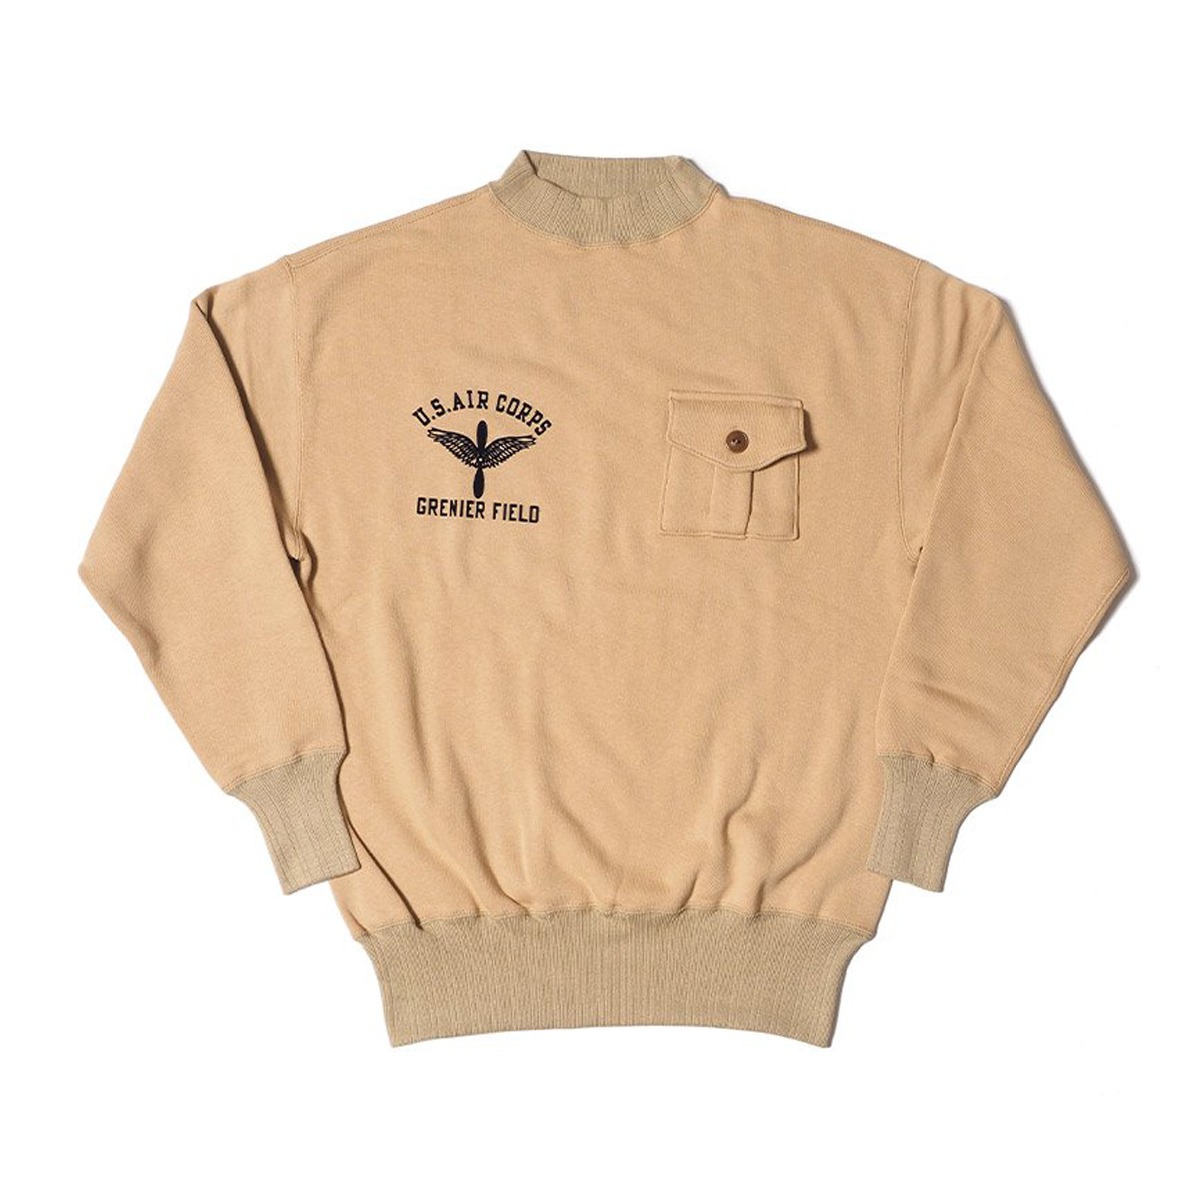 [WAREHOUSE] LOT 478 MILITARY SWEATSHIRT GRENIER FIELD 'BEIGE'